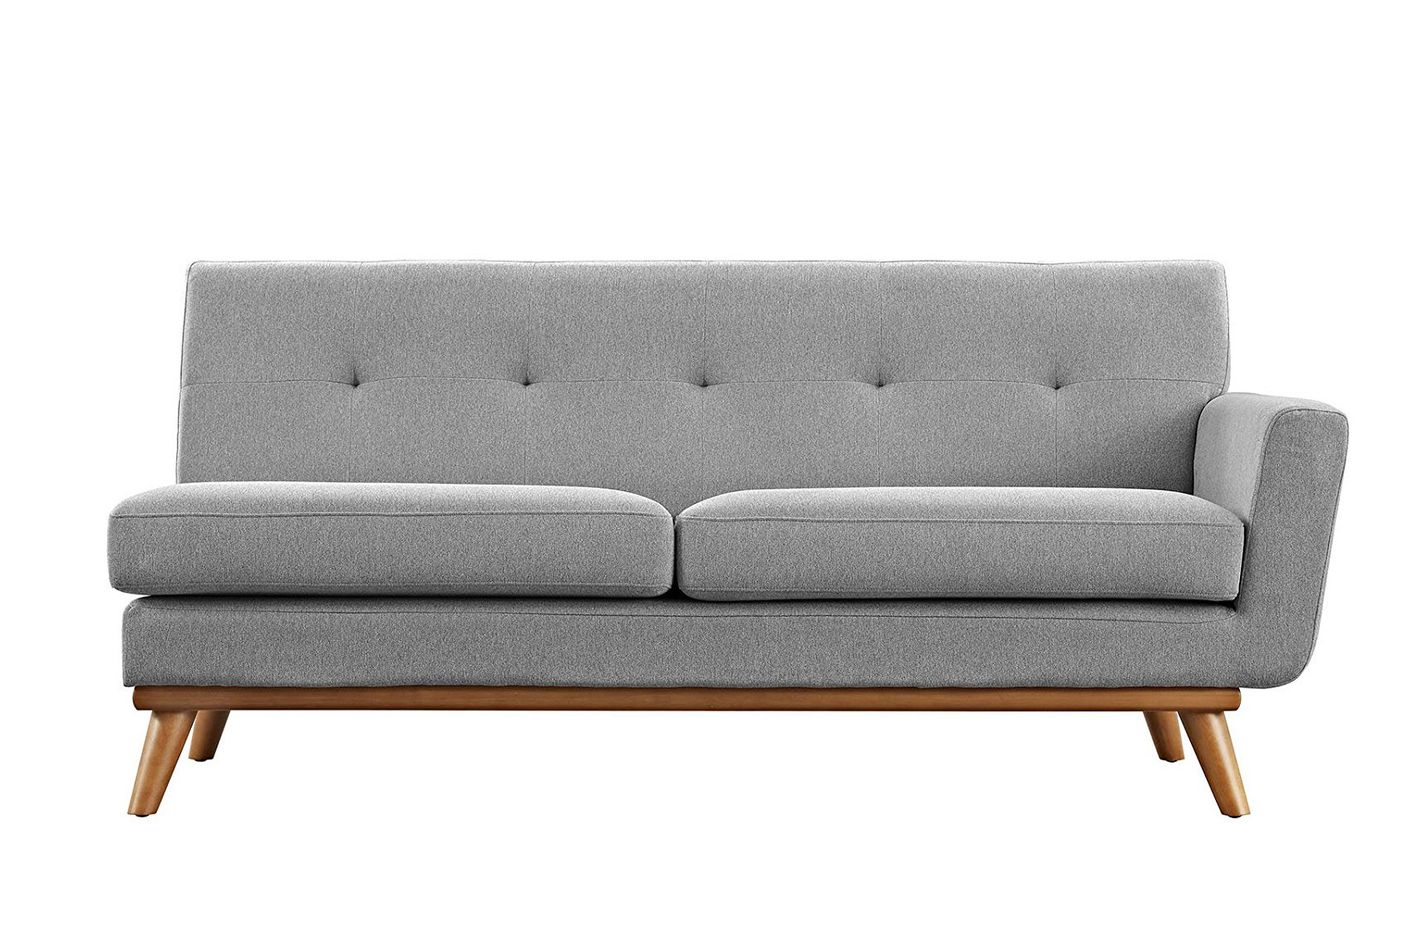 Best Affordable Sofa best source for affordable sofa tray tables pin It Can Work Well Mixed With Higher Priced Pieces Without Showing Its Affordable Price So No One Will Ever Know You Spent Less Than